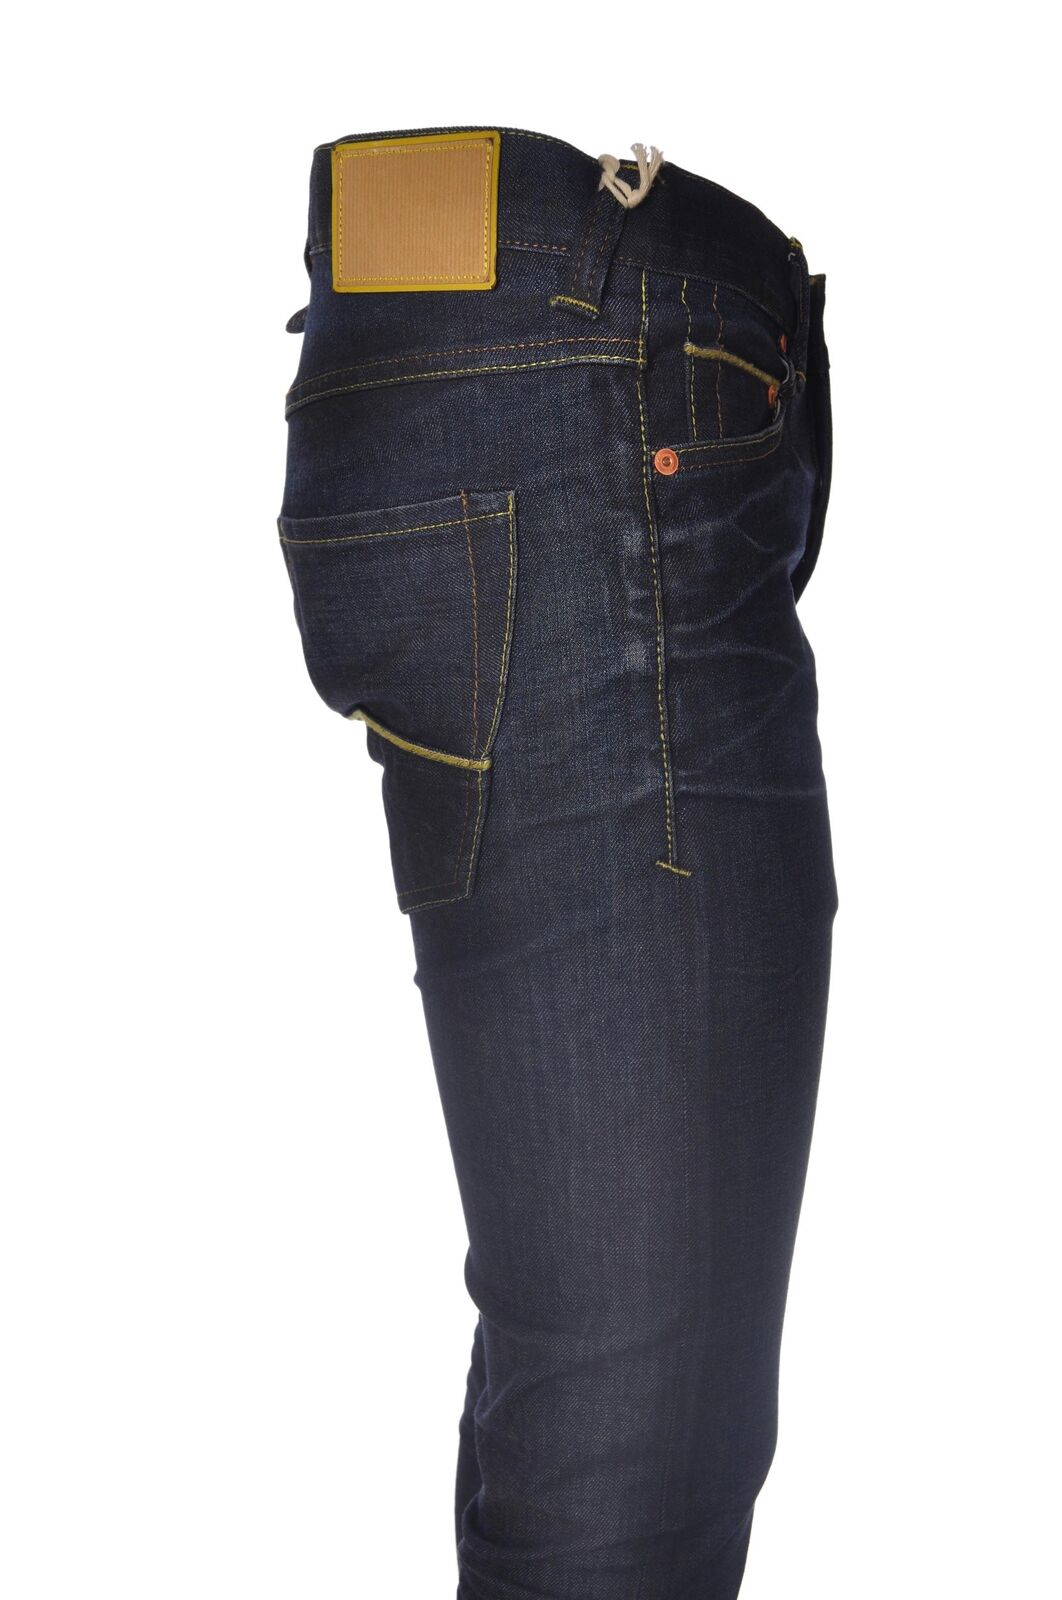 Care Label  -  Pants - Male - bluee - 4505324A180917